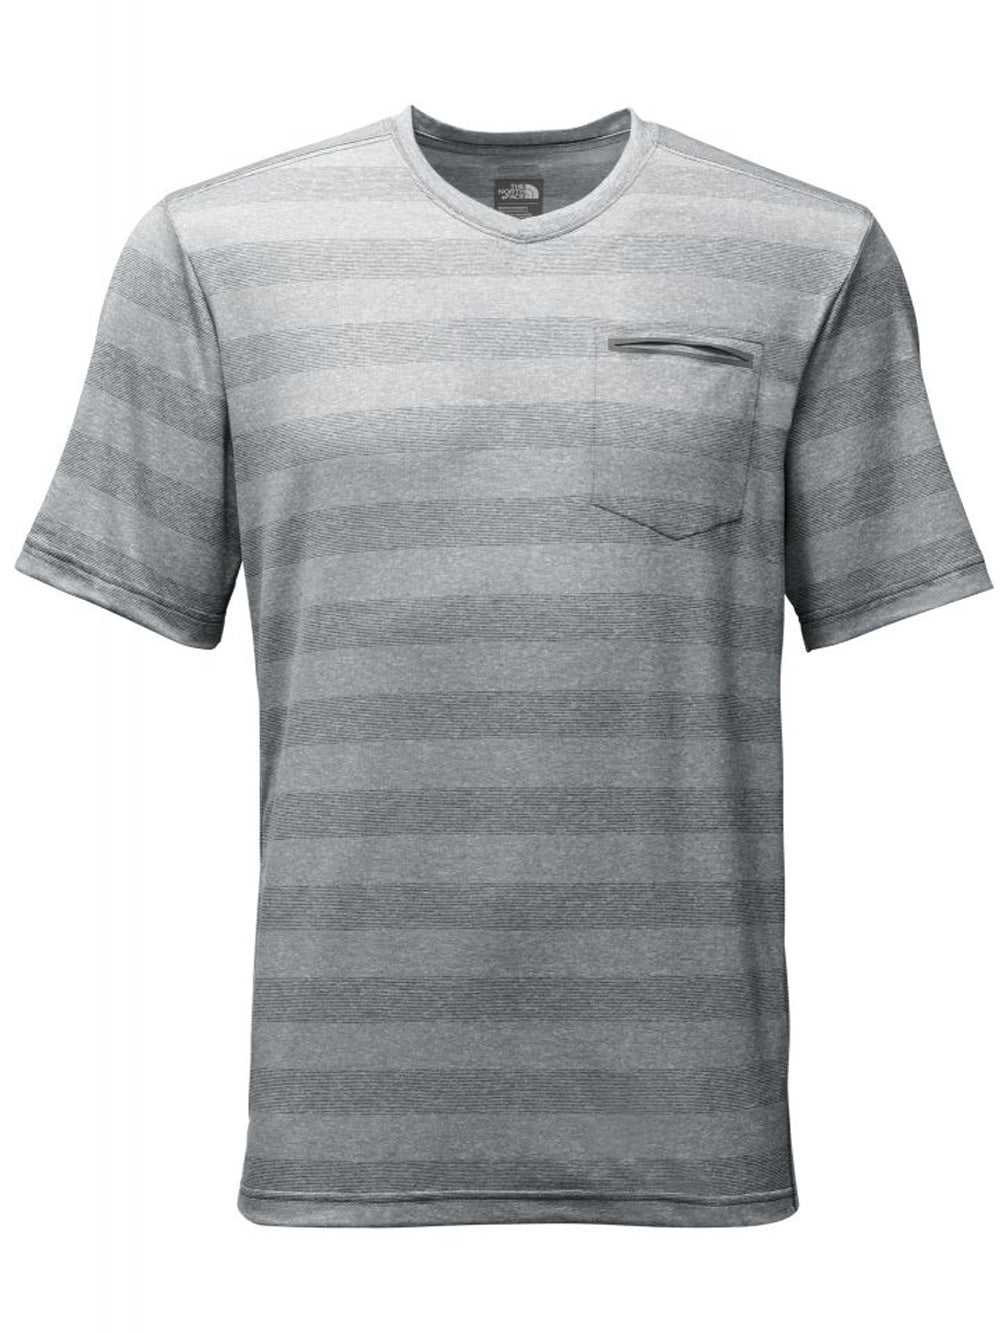 M S/S Unrestricted V-Neck - Zinc Grey - thefrontier